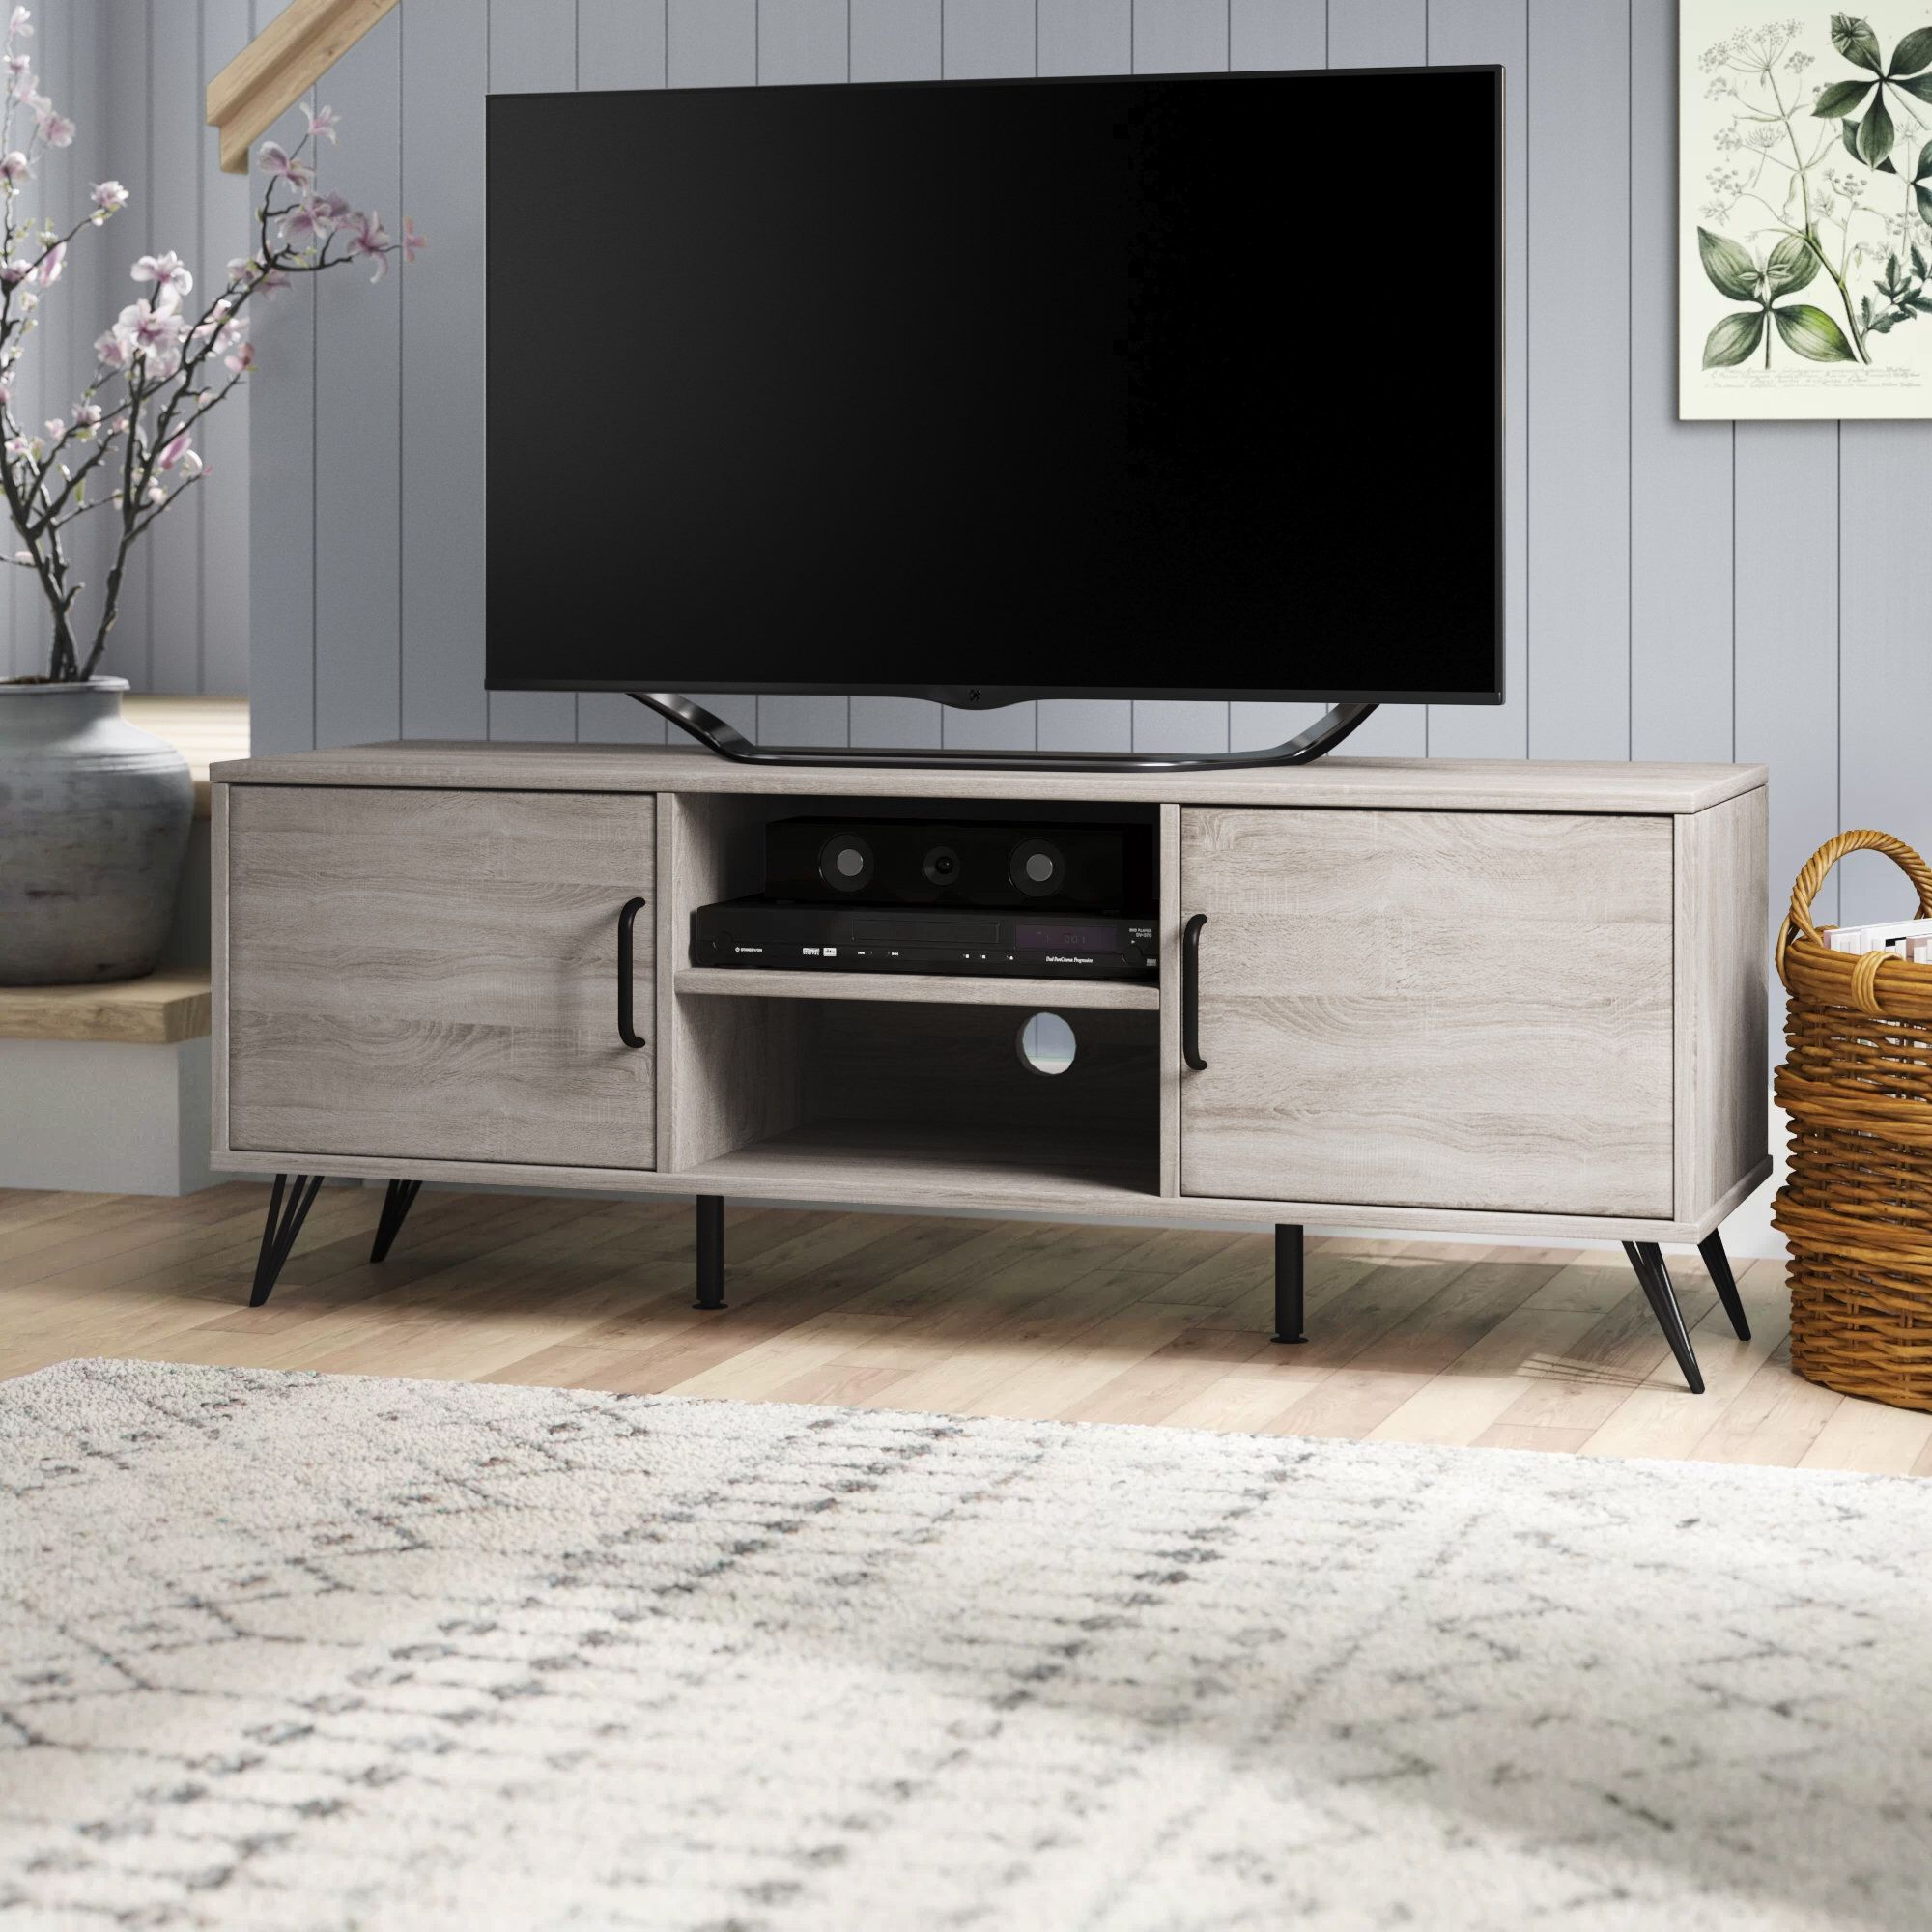 Chippewa Tv Stand For Tvs Up To 50 Vintage Tv Stand Living Room Tv Tv Stand